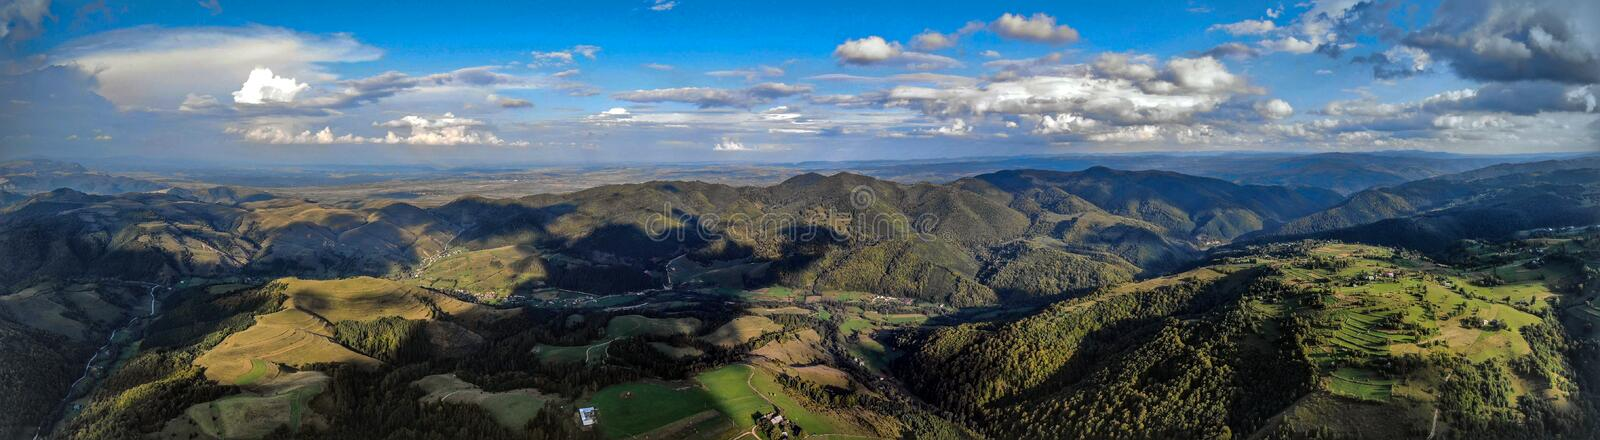 Landscape panorama from drone royalty free stock images